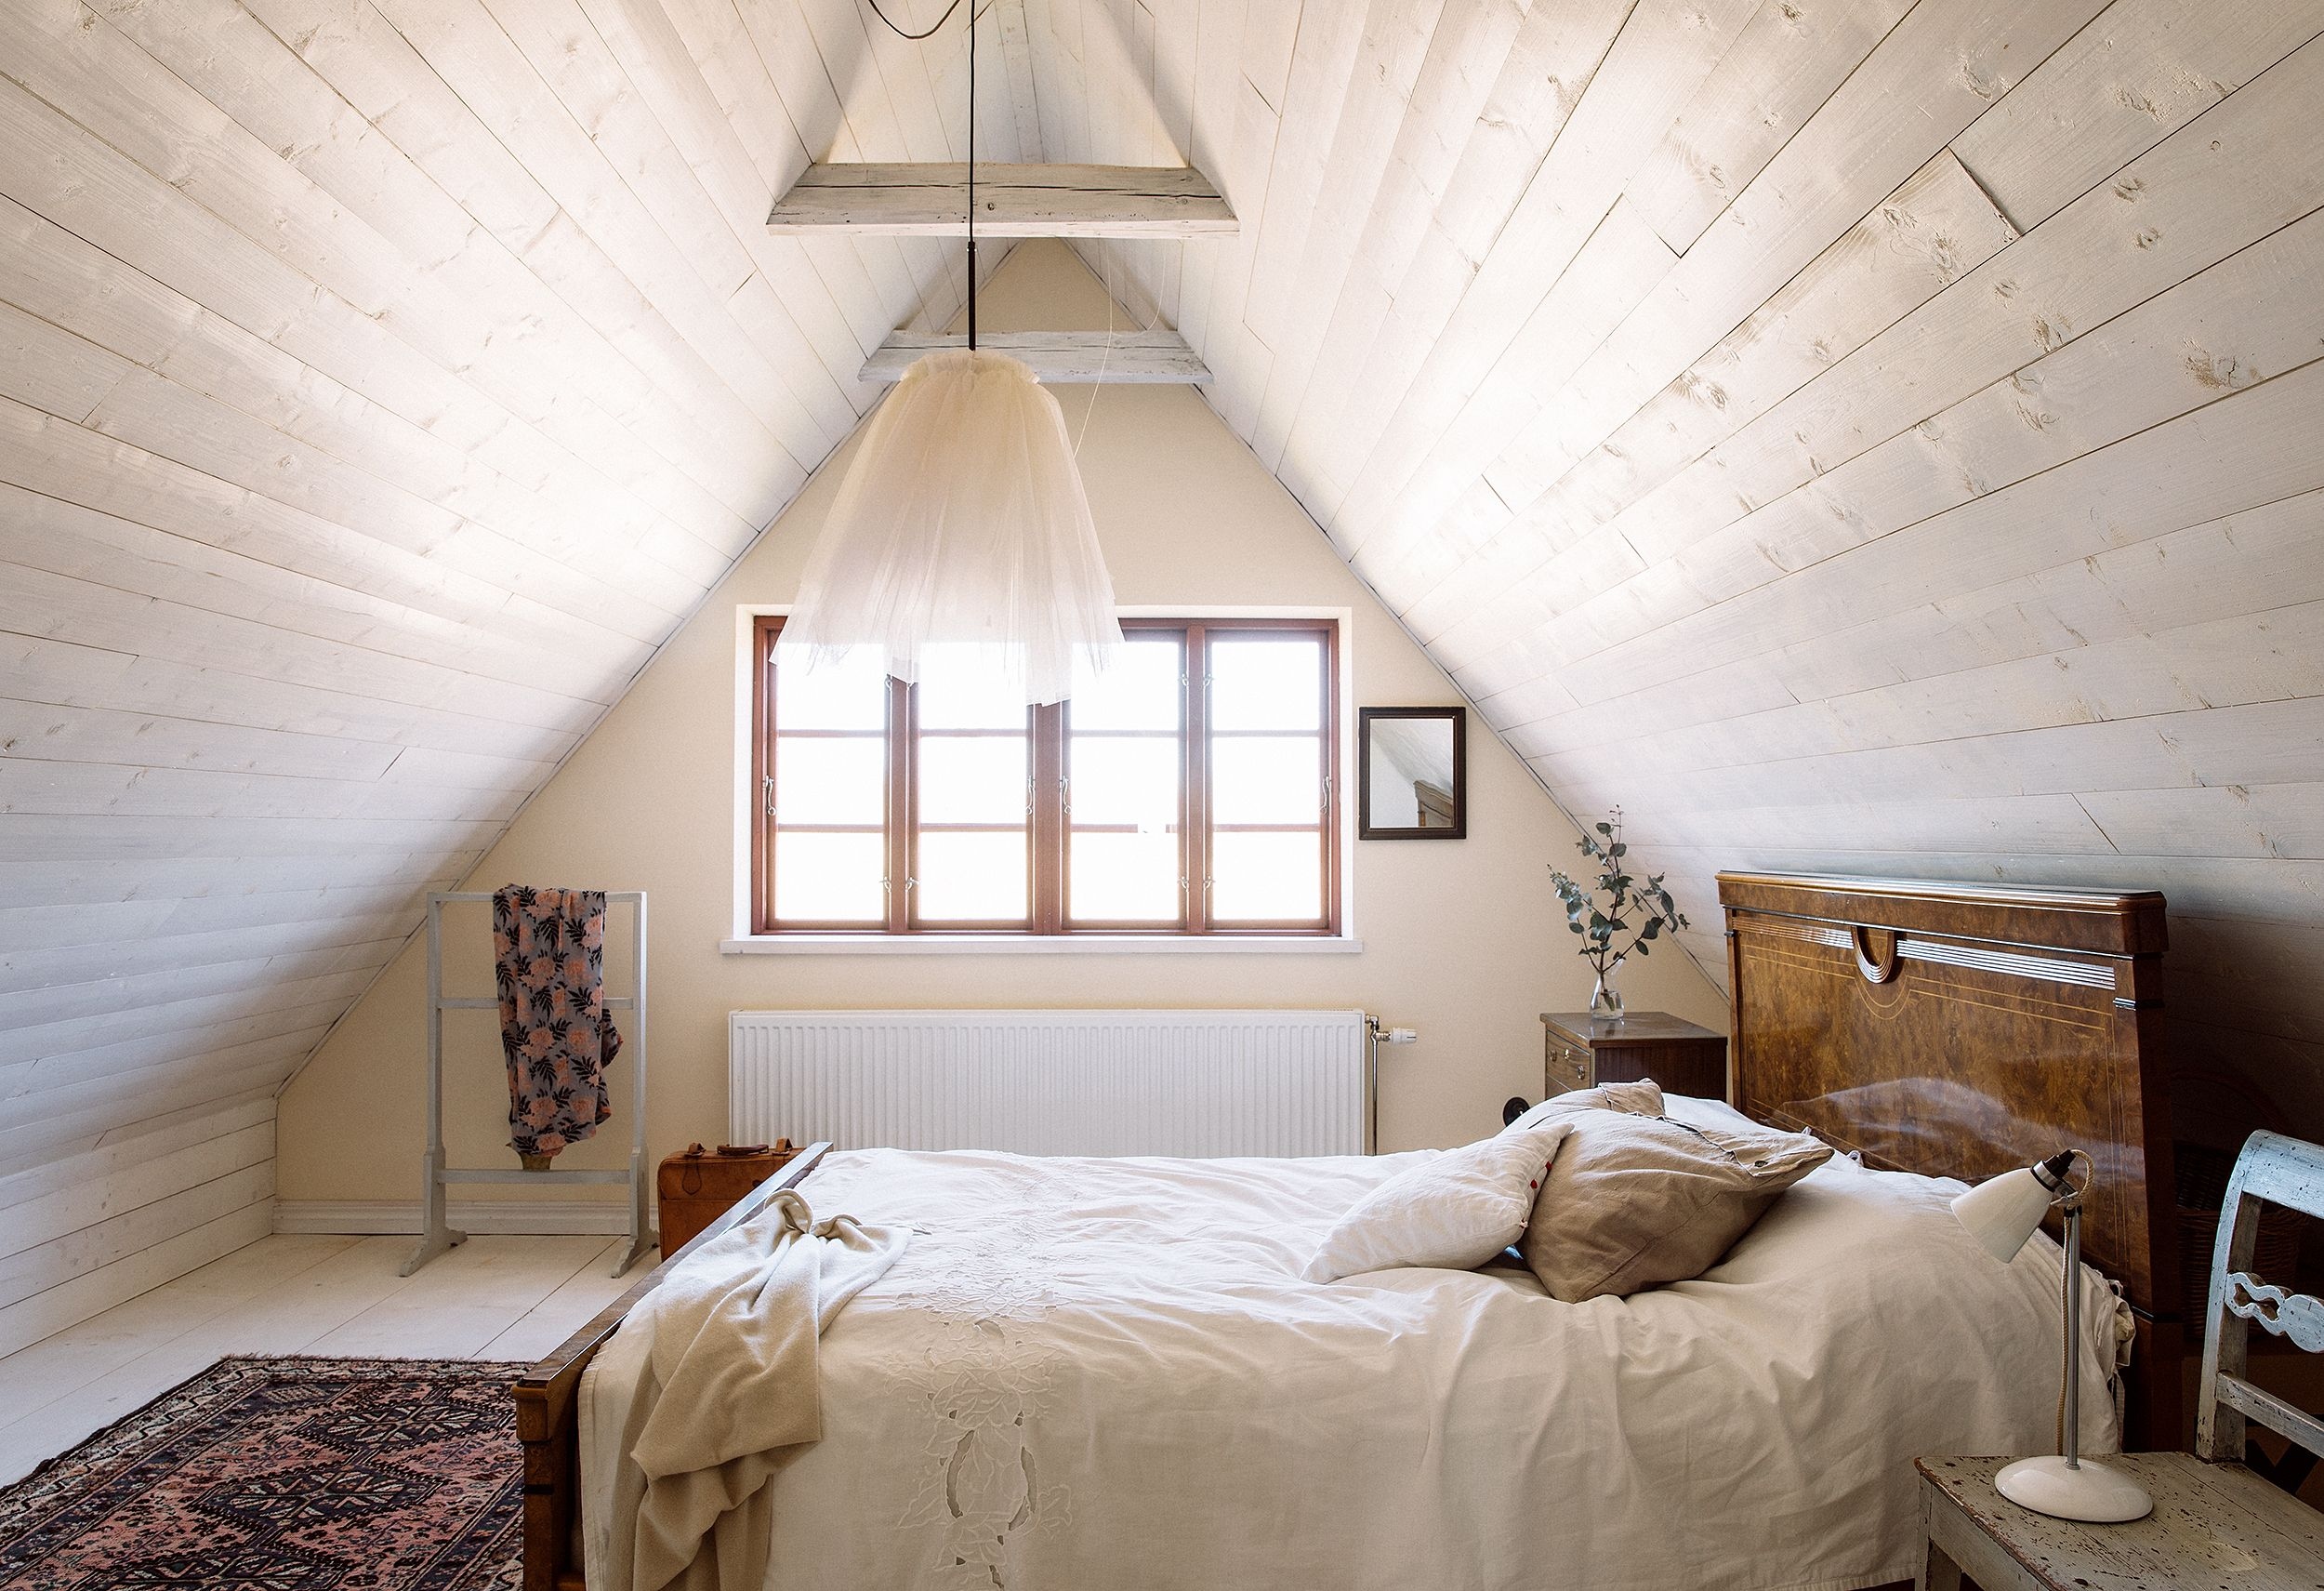 4 Dreamy Attic Rooms - Sloped Ceiling Design Ideas